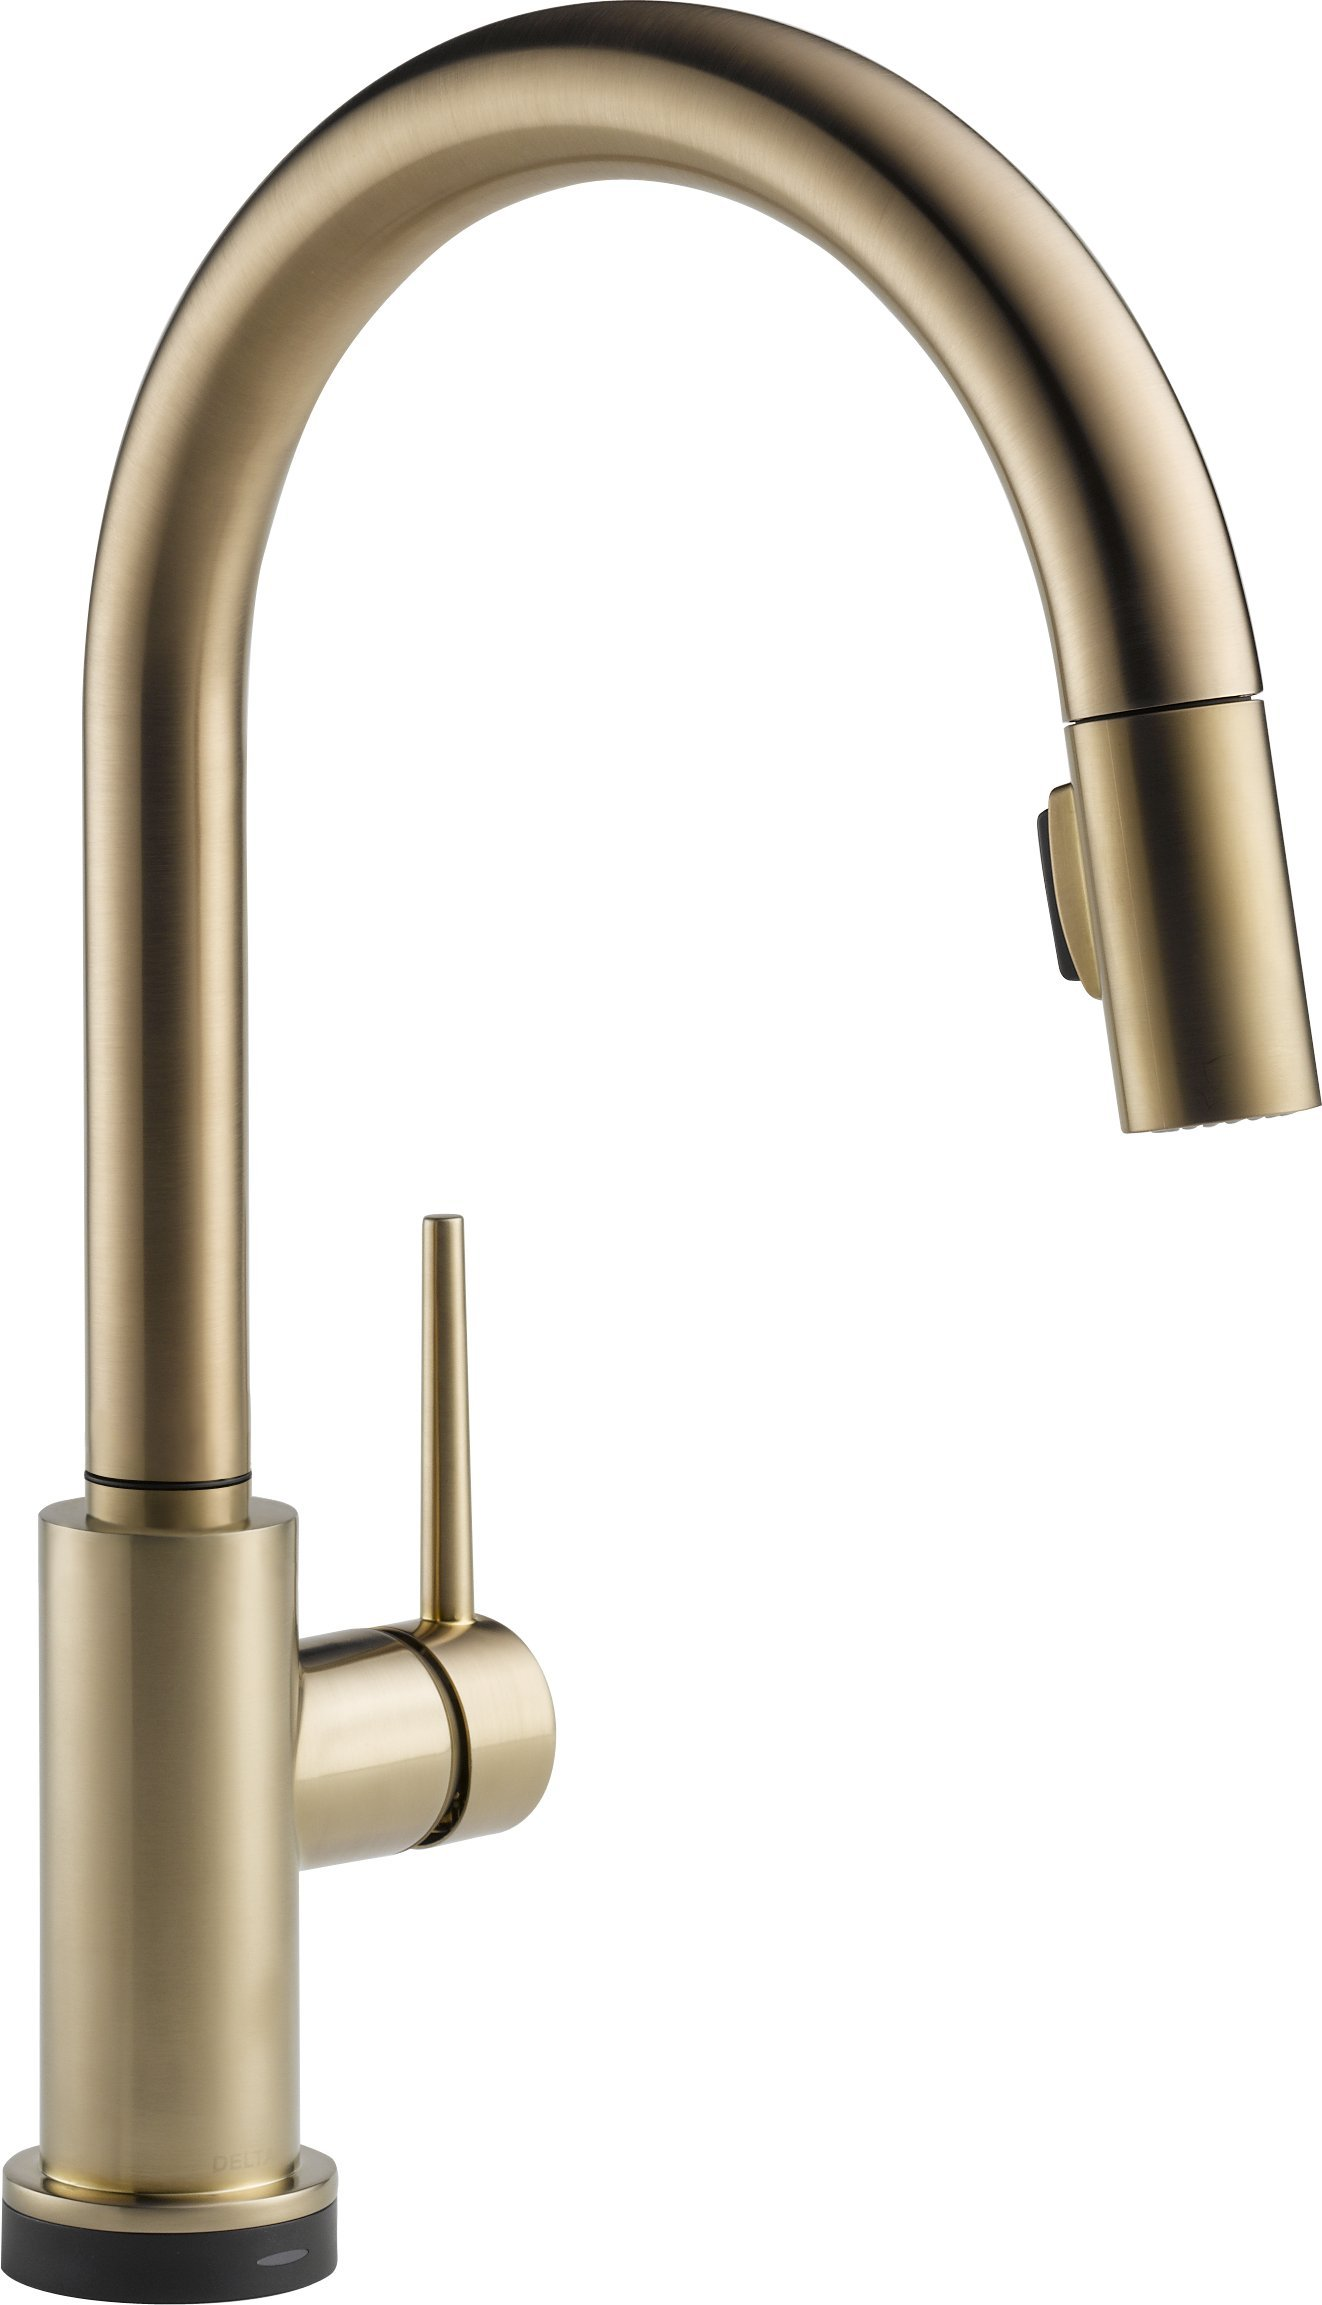 Delta 9159T-CZ-DST Trinsic Single-Handle Pull-Down Touch Kitchen Faucet with Touch2O Technology and Magnetic Docking Spray Head, Champagne Bronze by DELTA FAUCET